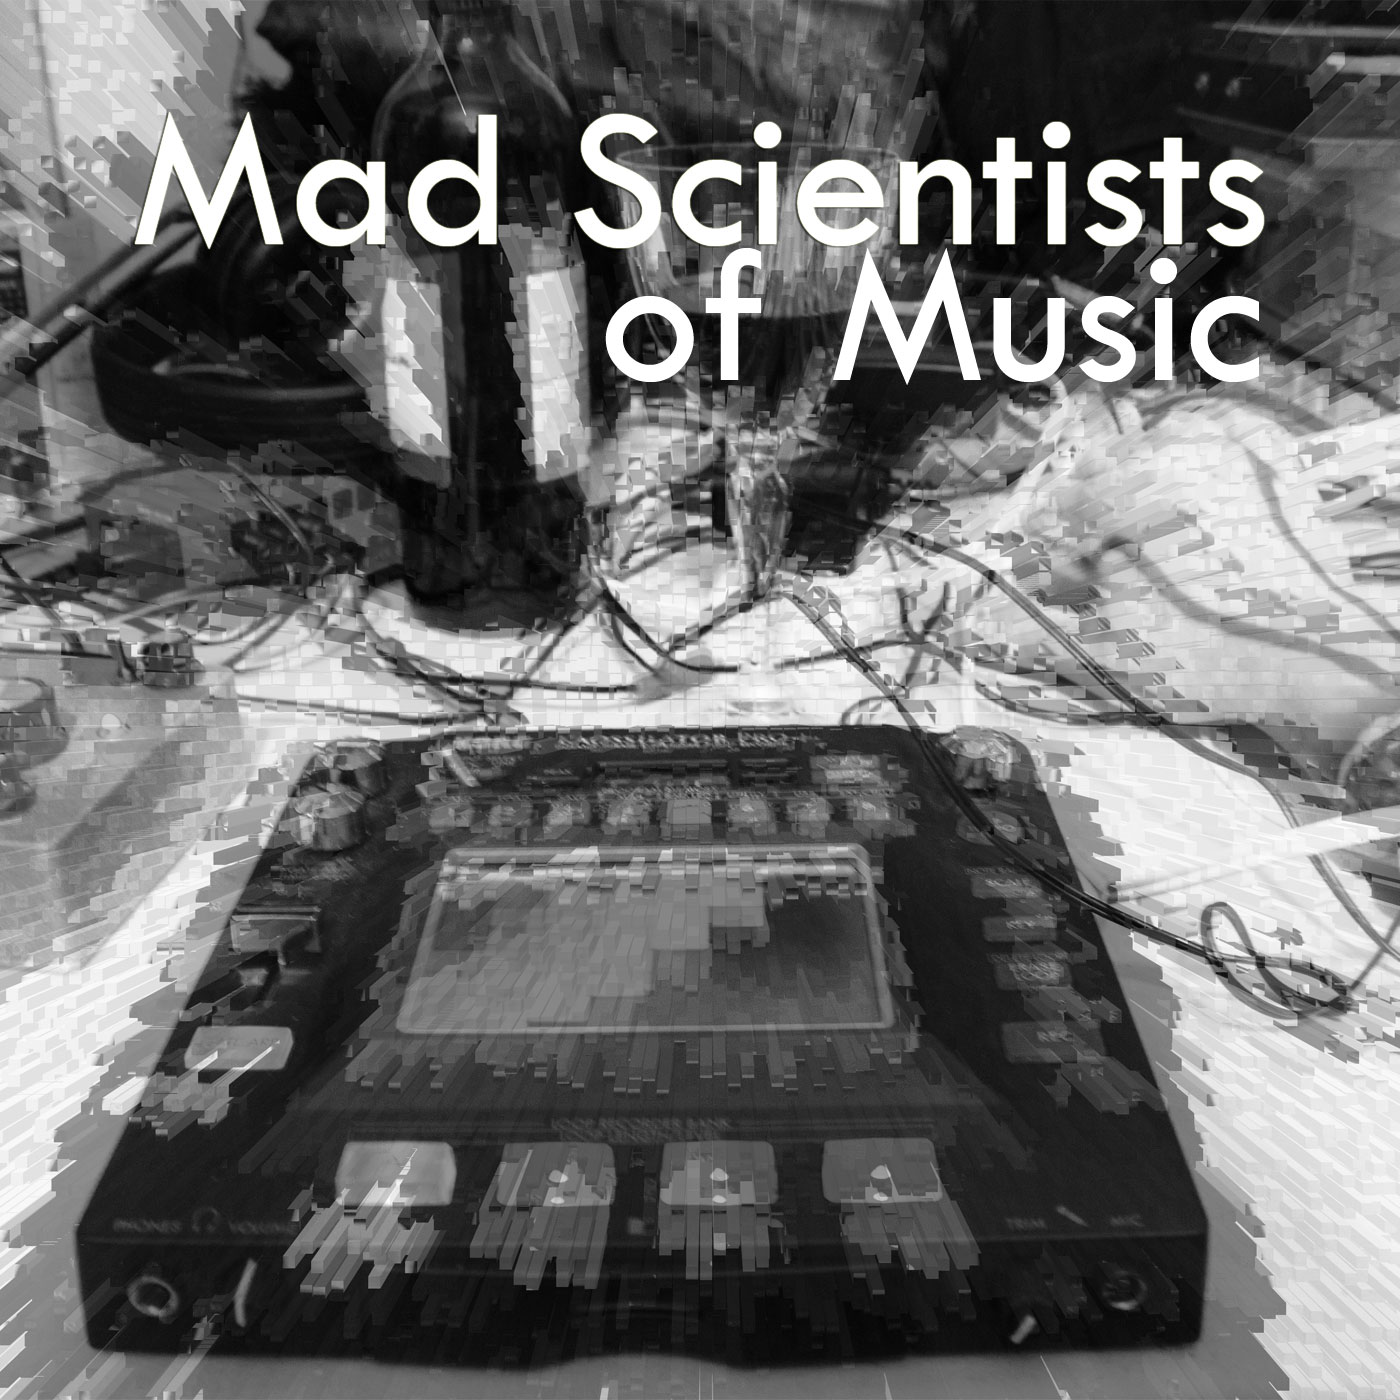 Mad Scientists of Music Documentary